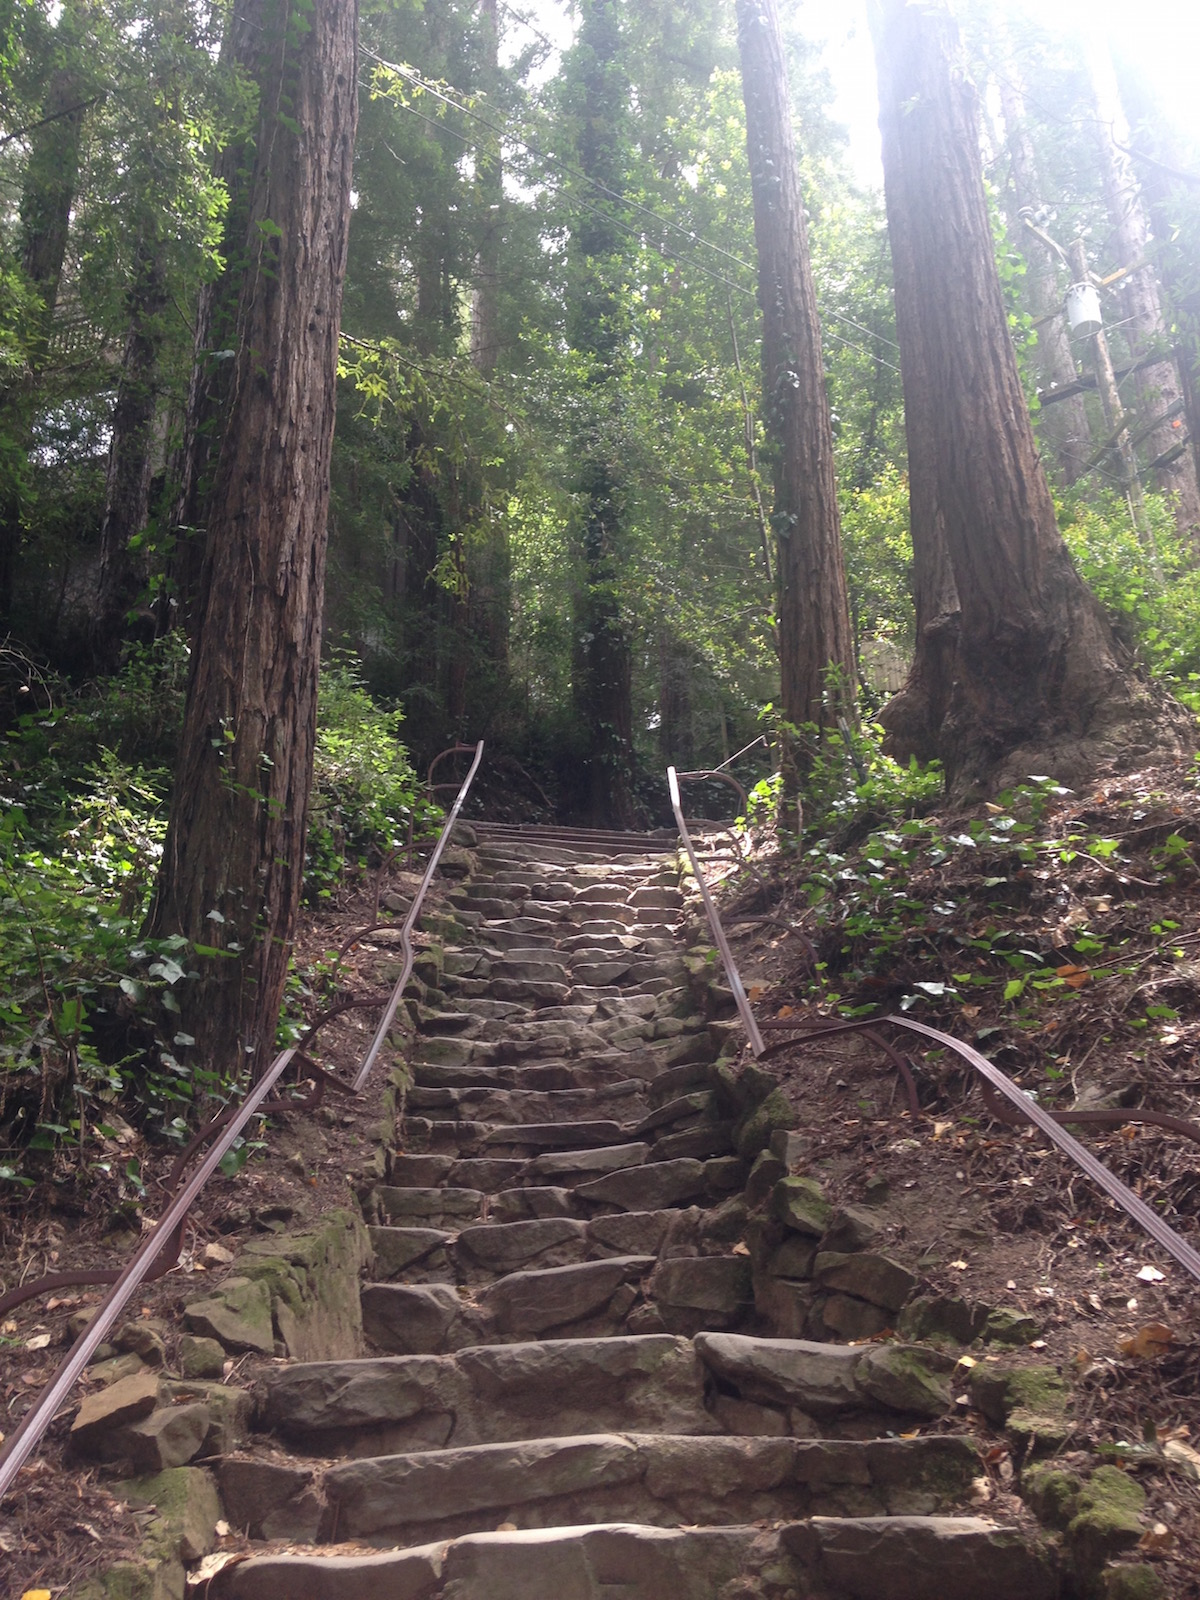 The Dipsea steps © Danielle Chemtob